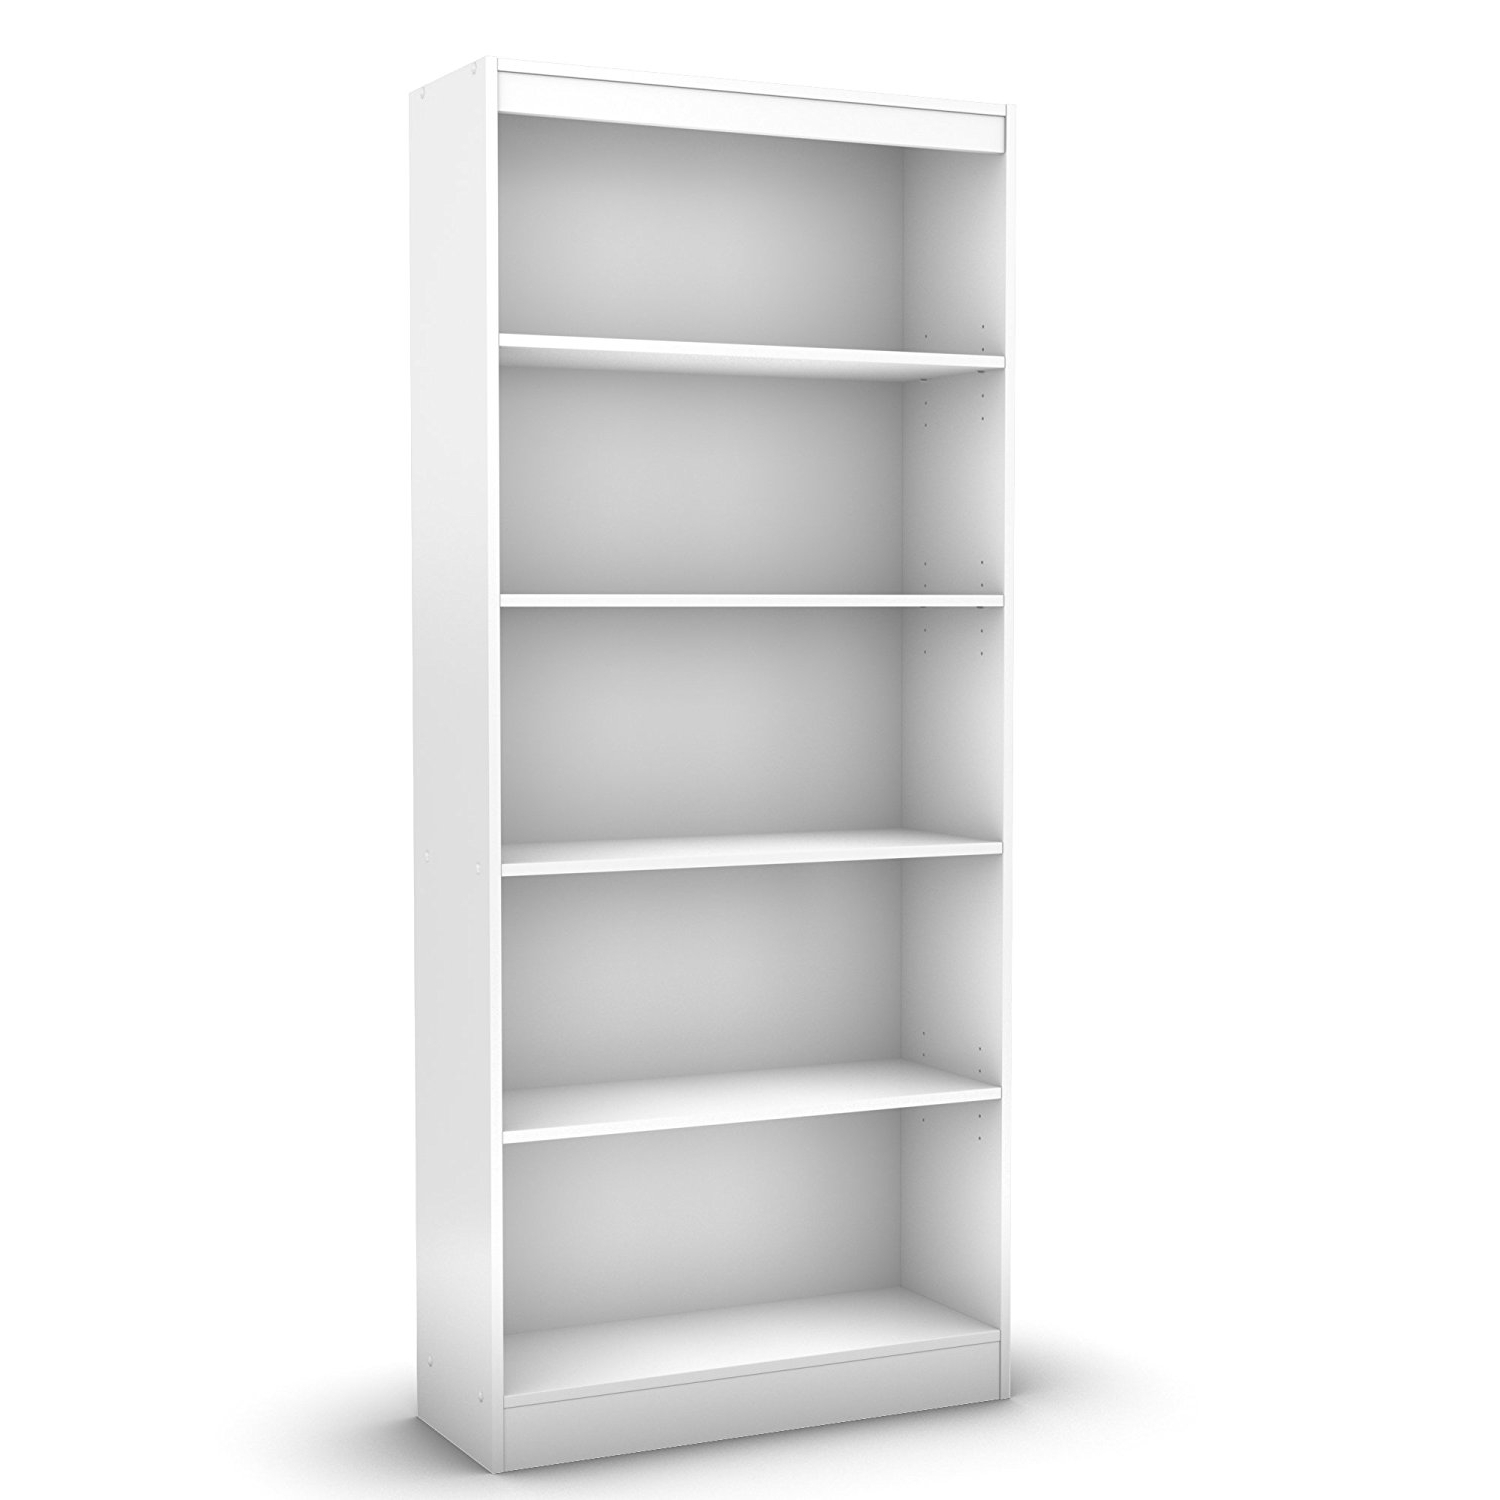 Fashionable South Shore Bookcases With Regard To Amazon: South Shore Axess Collection 5 Shelf Bookcase, Pure (View 4 of 15)